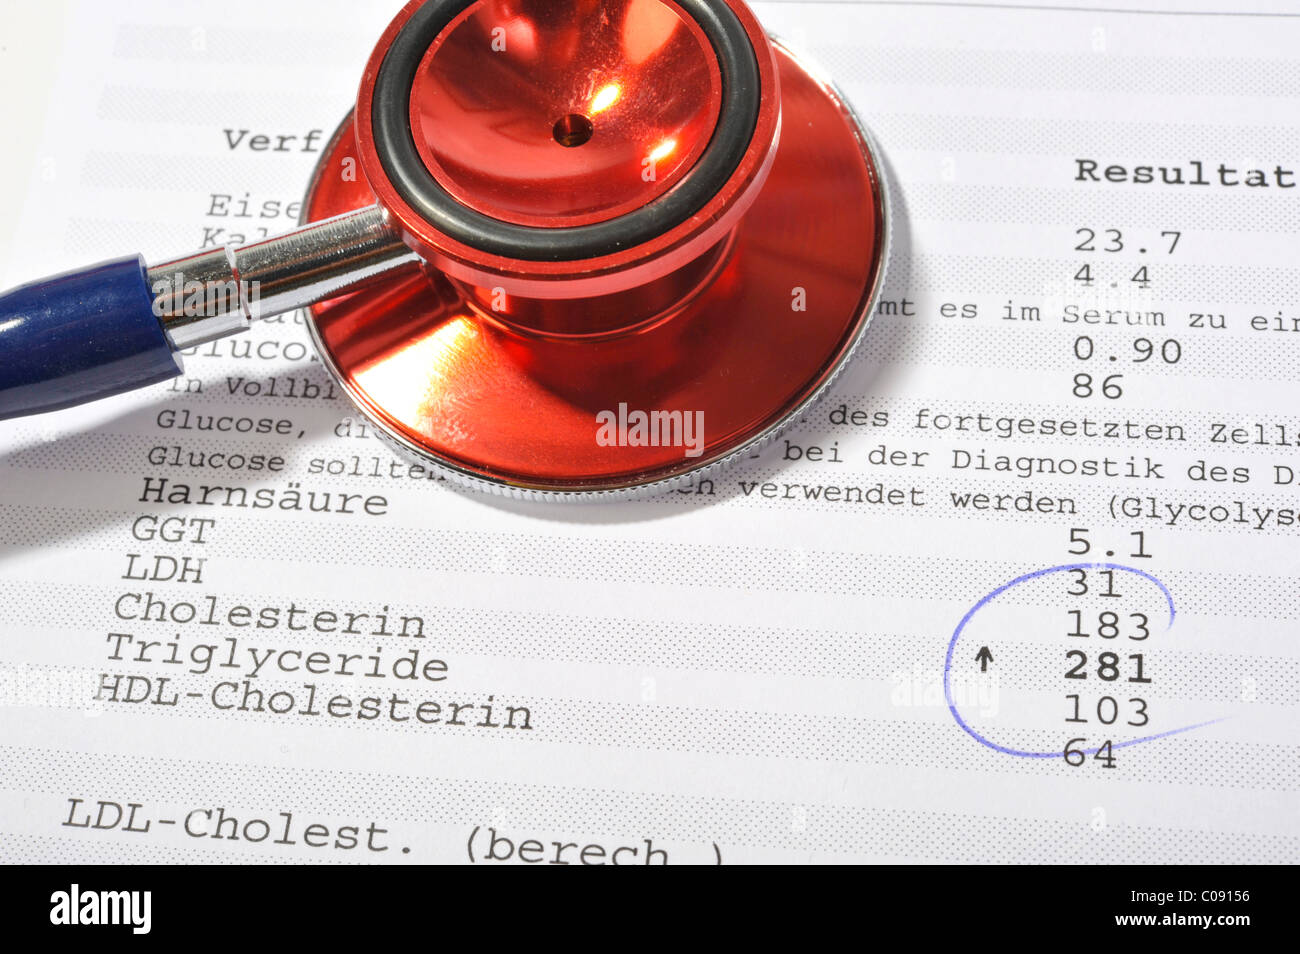 Examination results of a blood test with elevated cholesterol levels - Stock Image